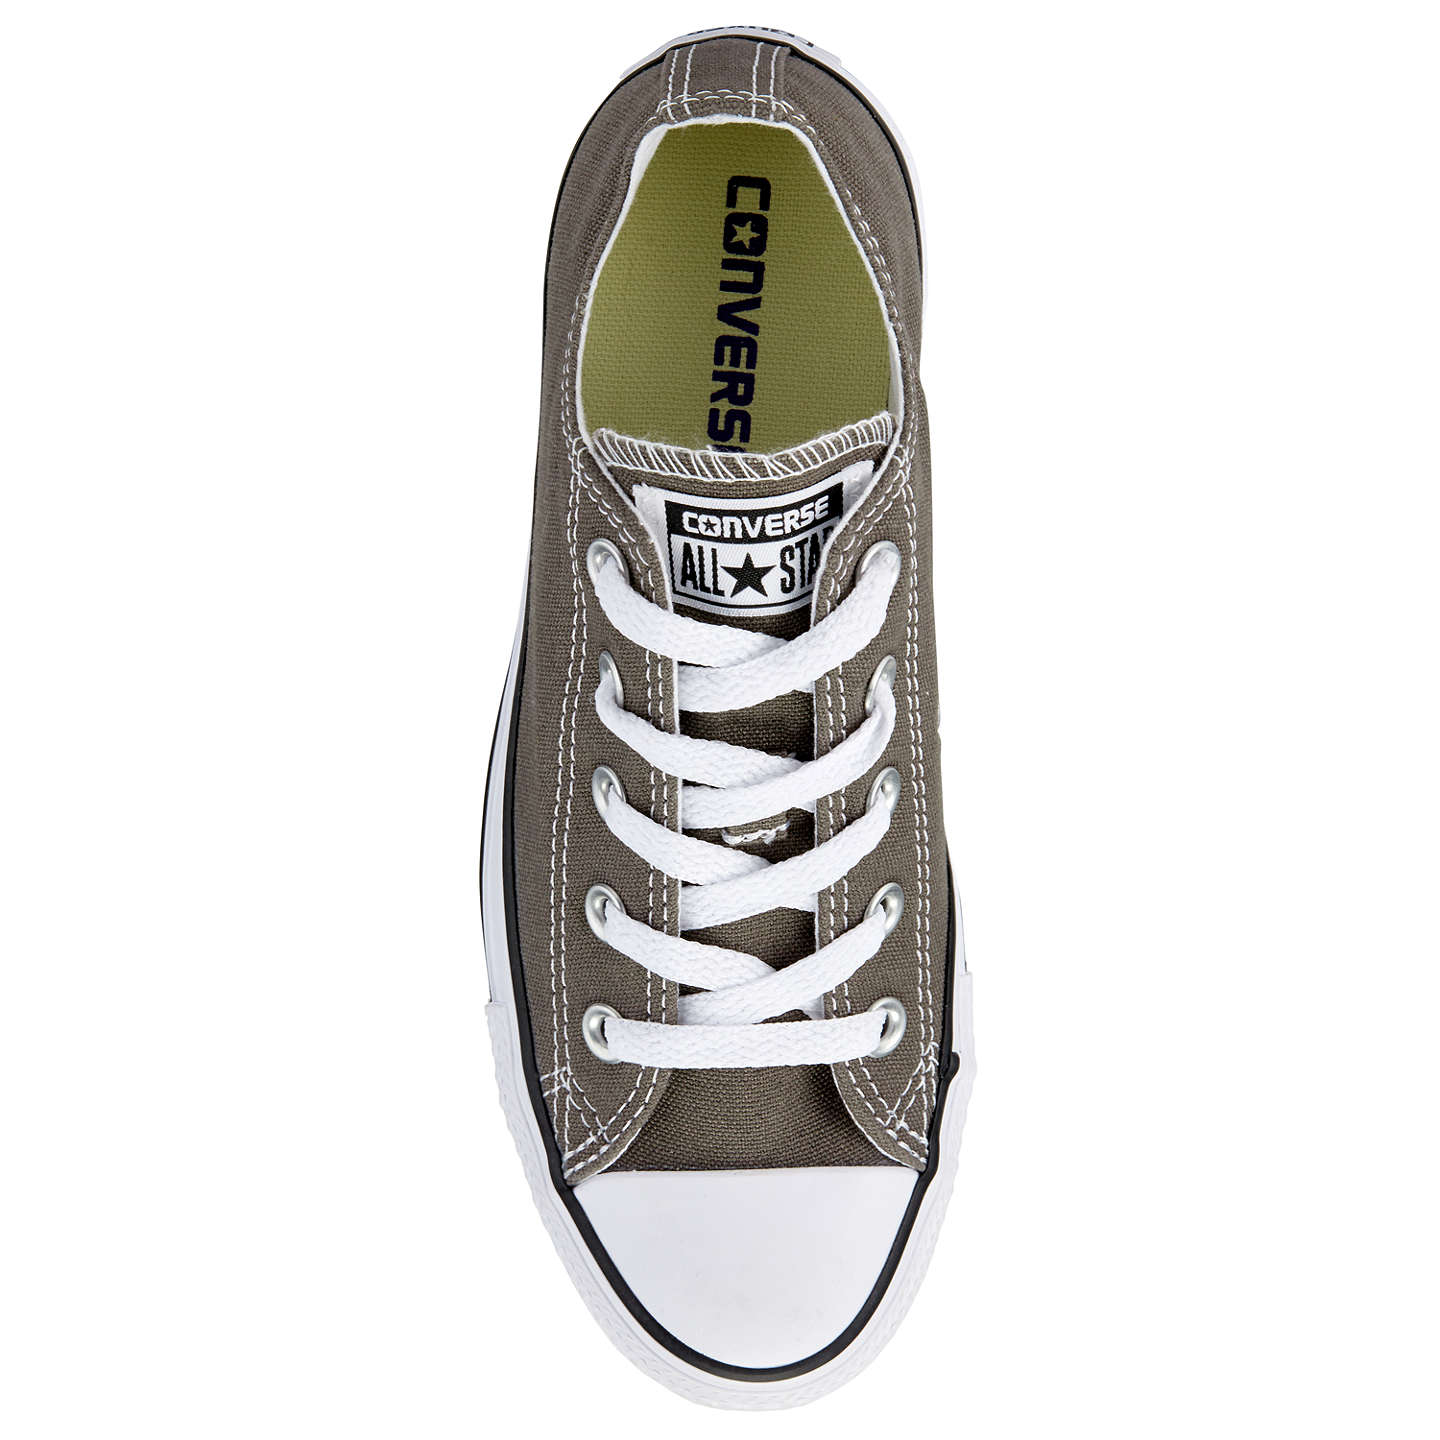 BuyConverse Chuck Taylor All Star Canvas Ox Low-Top Trainers, Charcoal, 5 Online at johnlewis.com